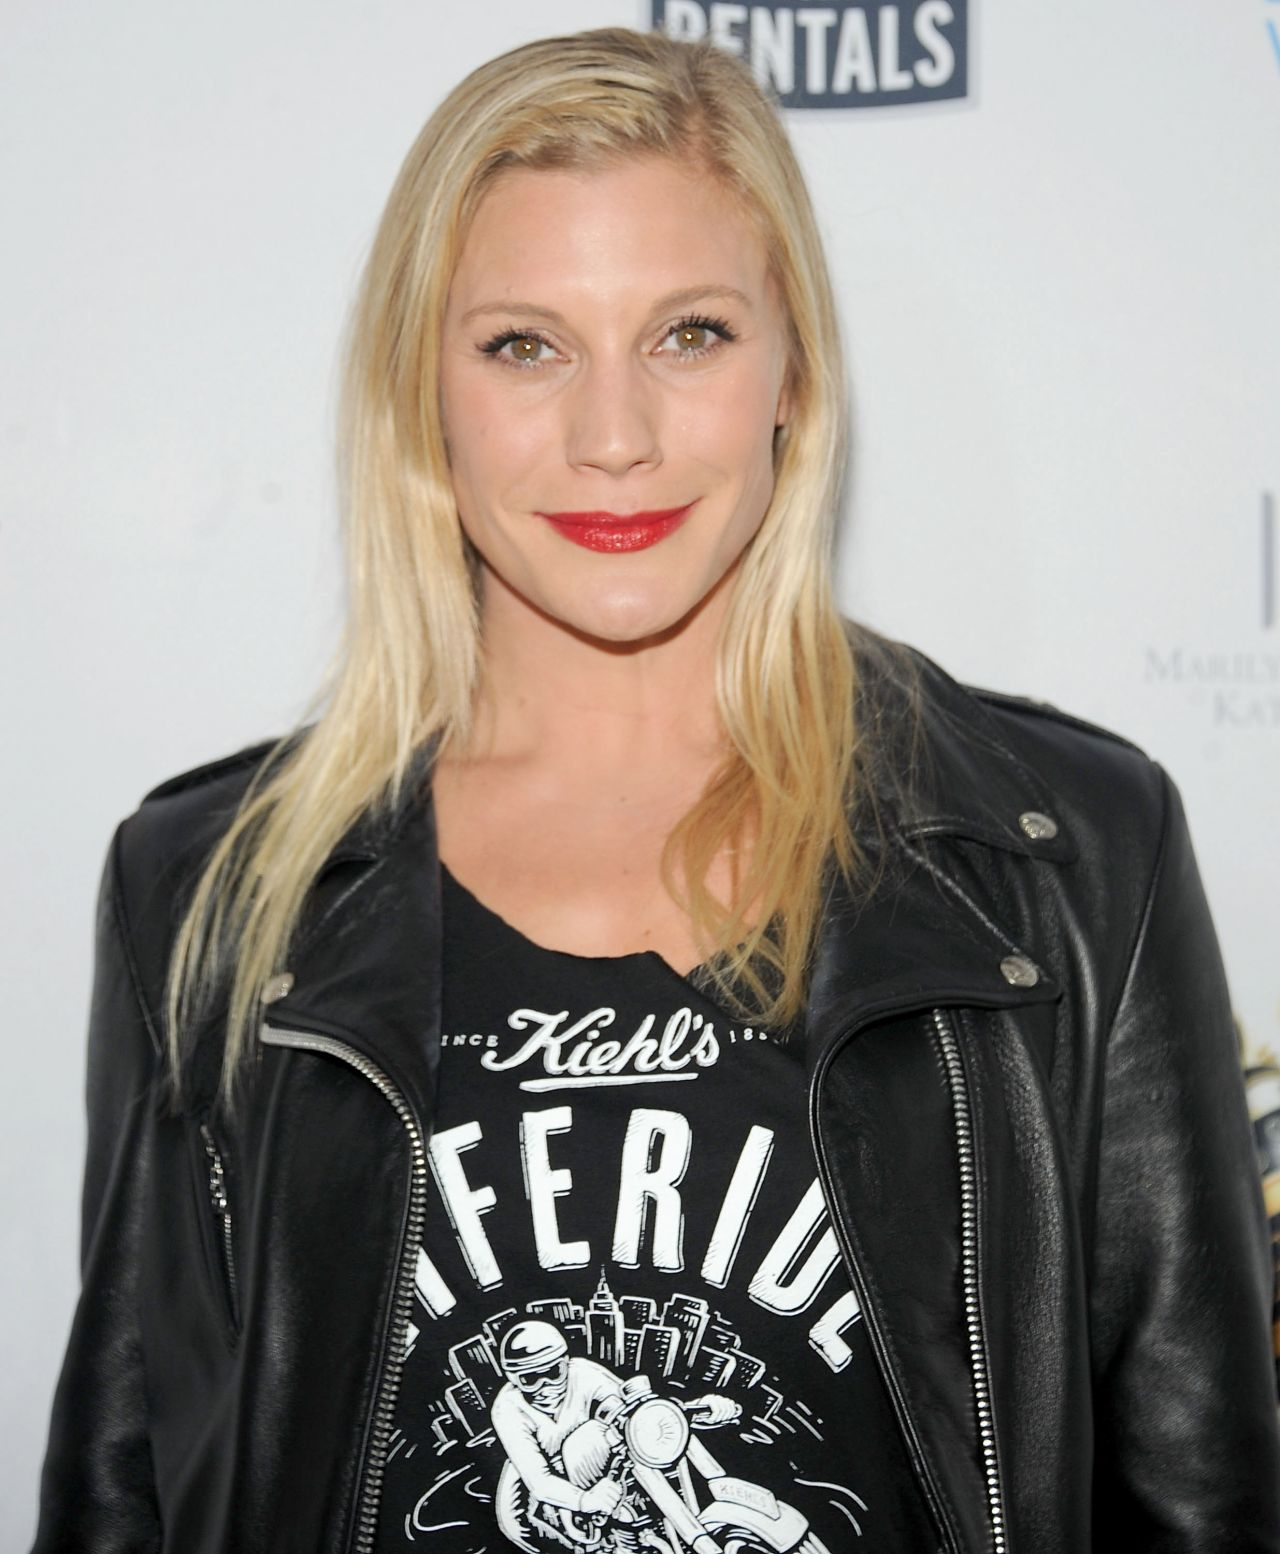 Katee Sackhoff – Kiehl's LifeRide Finale Event – August 2014